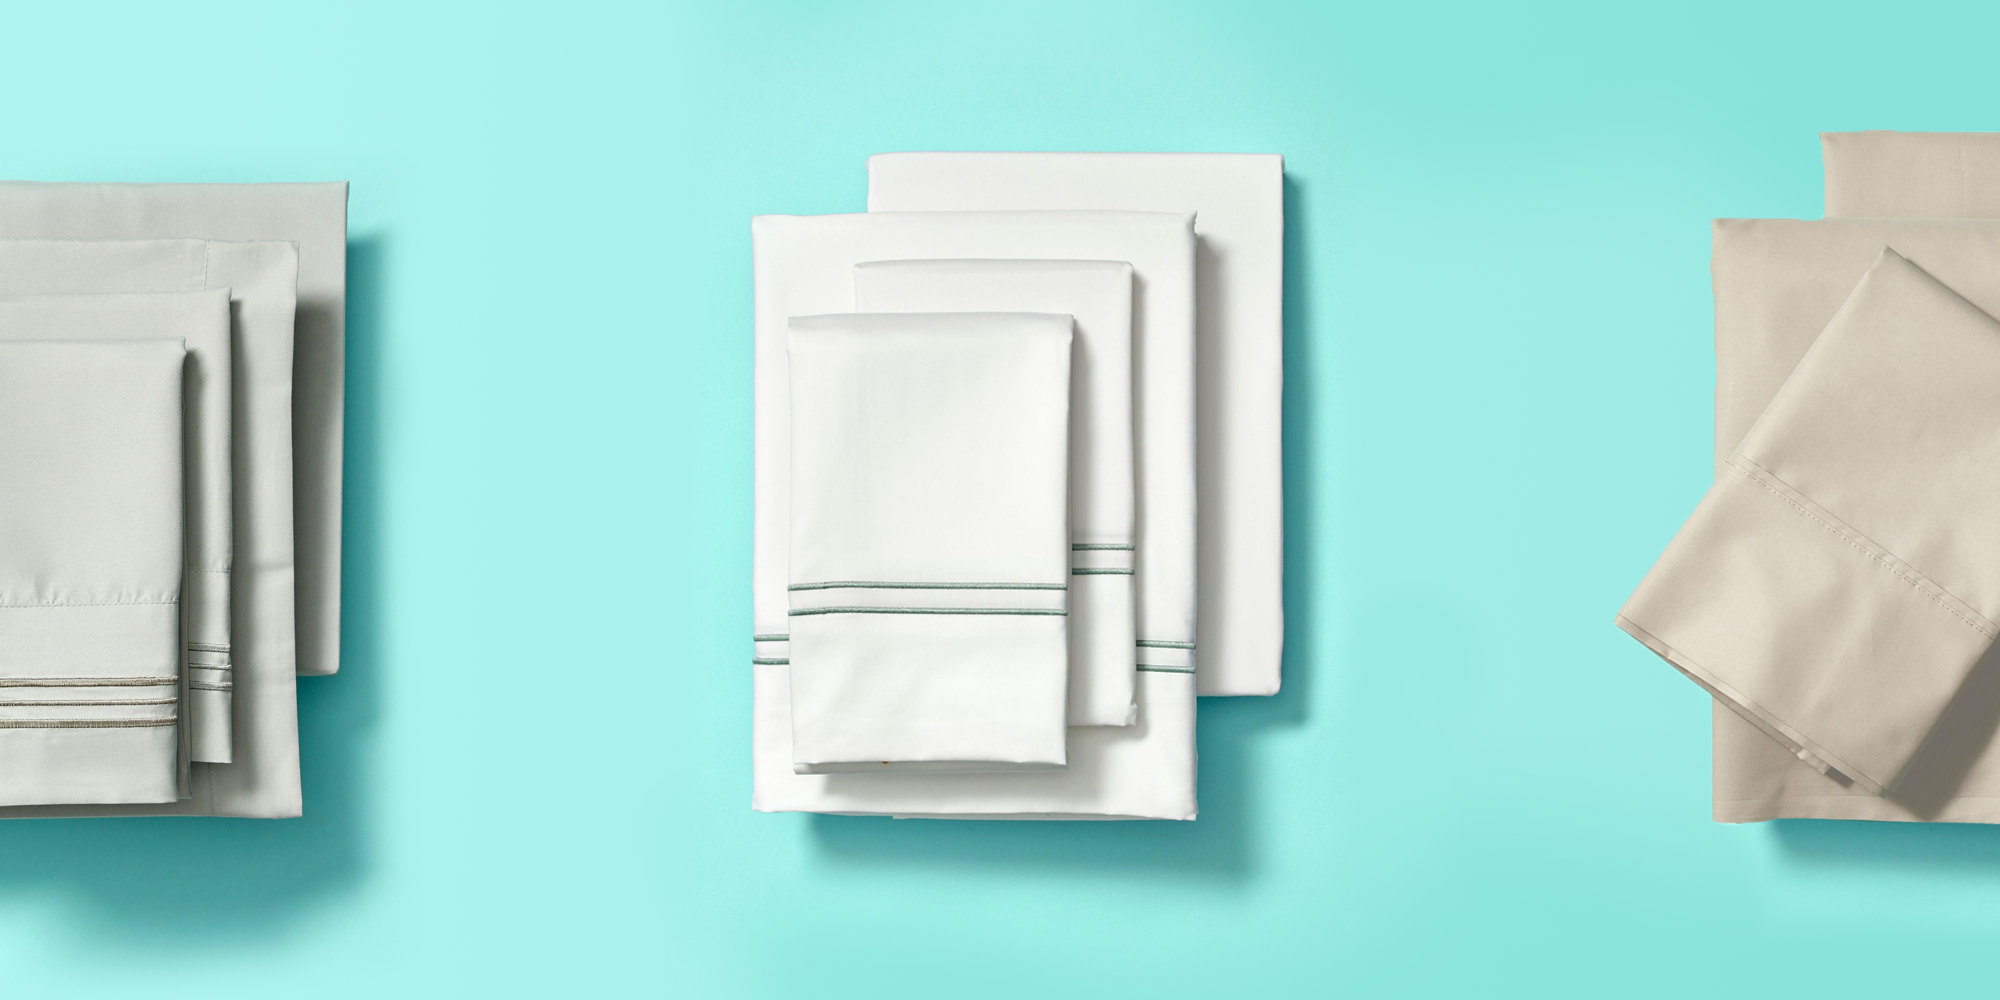 Picture of: 10 Softest Sheet Sets To Buy In 2020 Soft Comfy Bed Sheets